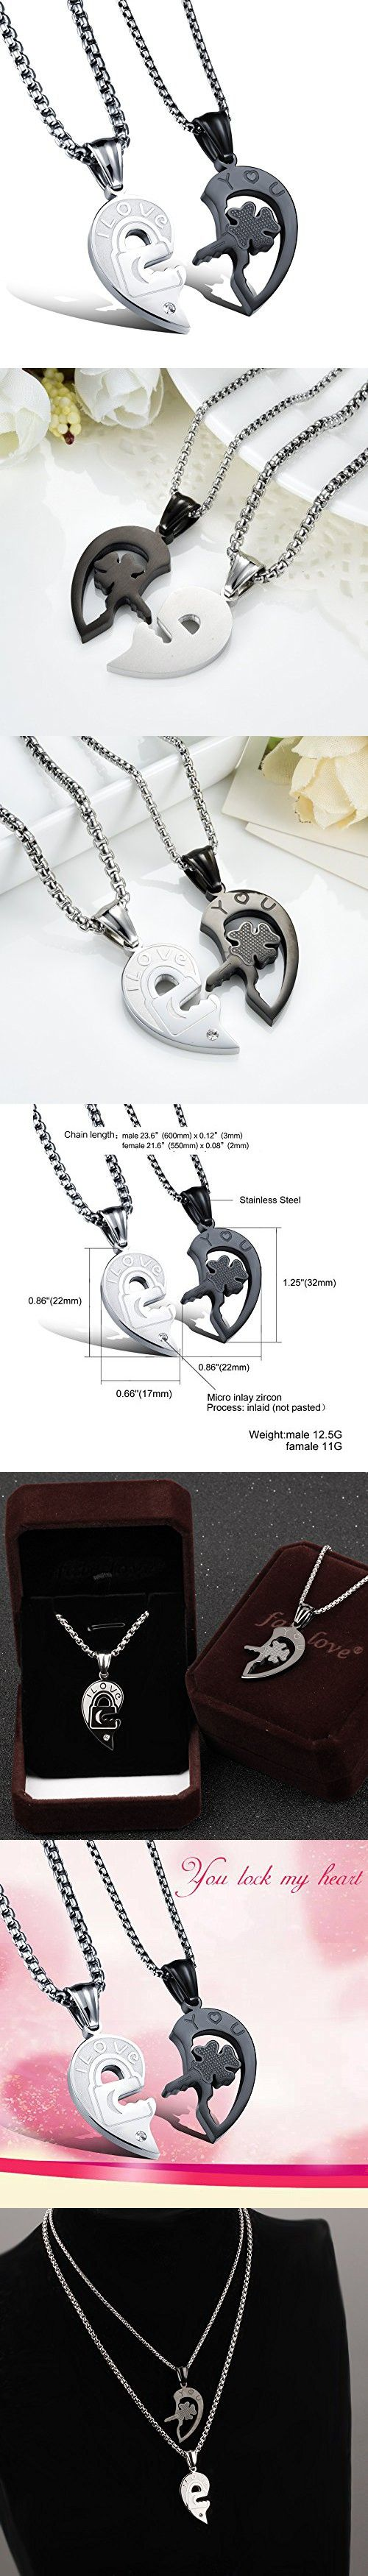 Fate Love His and Her Heart Shape Puzzle Stainless Steel Matching Couples Lover Necklace Set (with gift box)